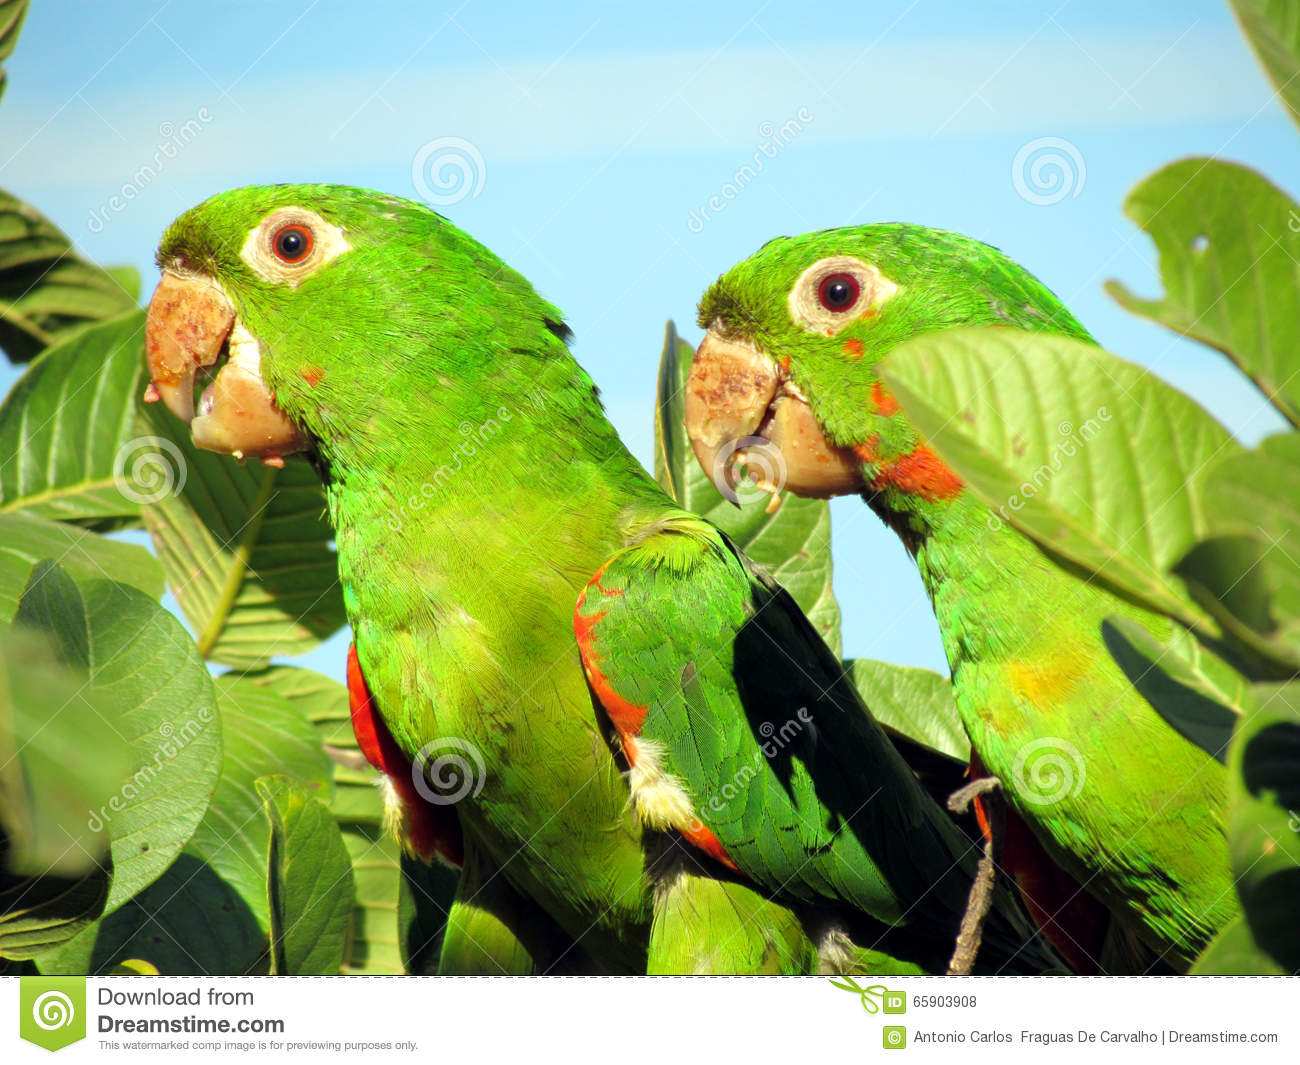 A Couple Of Parrots Maritaca On Guava Tree. Stock Photo.